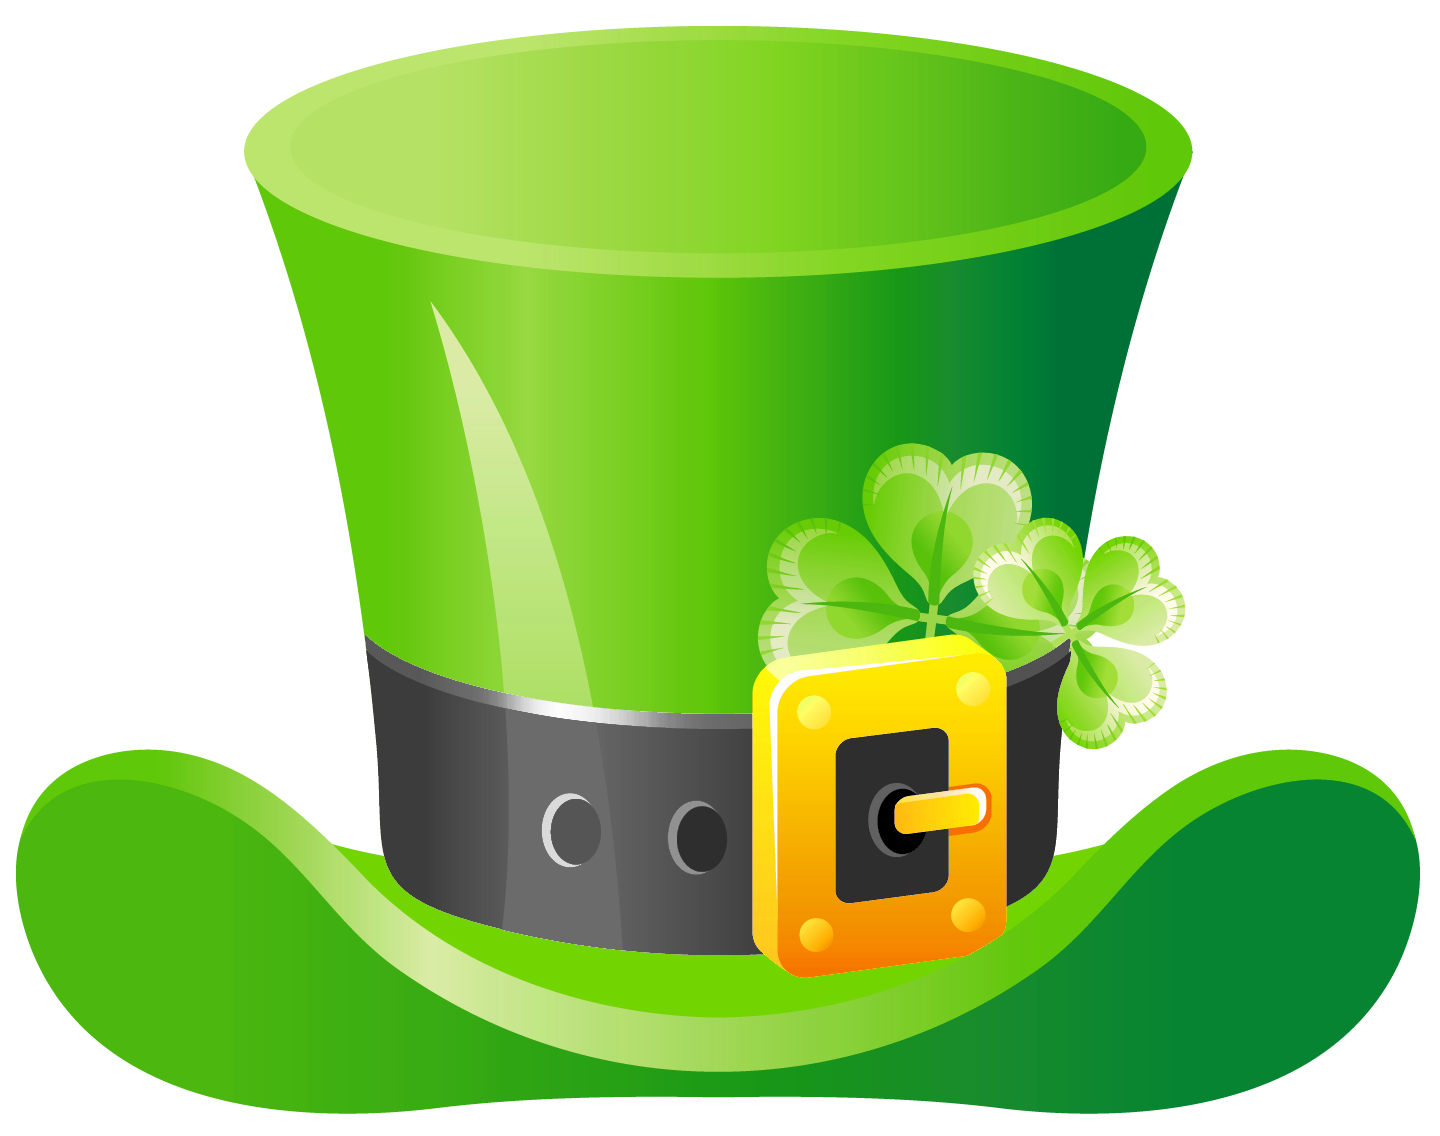 Clipart balloon st patrick's day. Patrick hat png picture